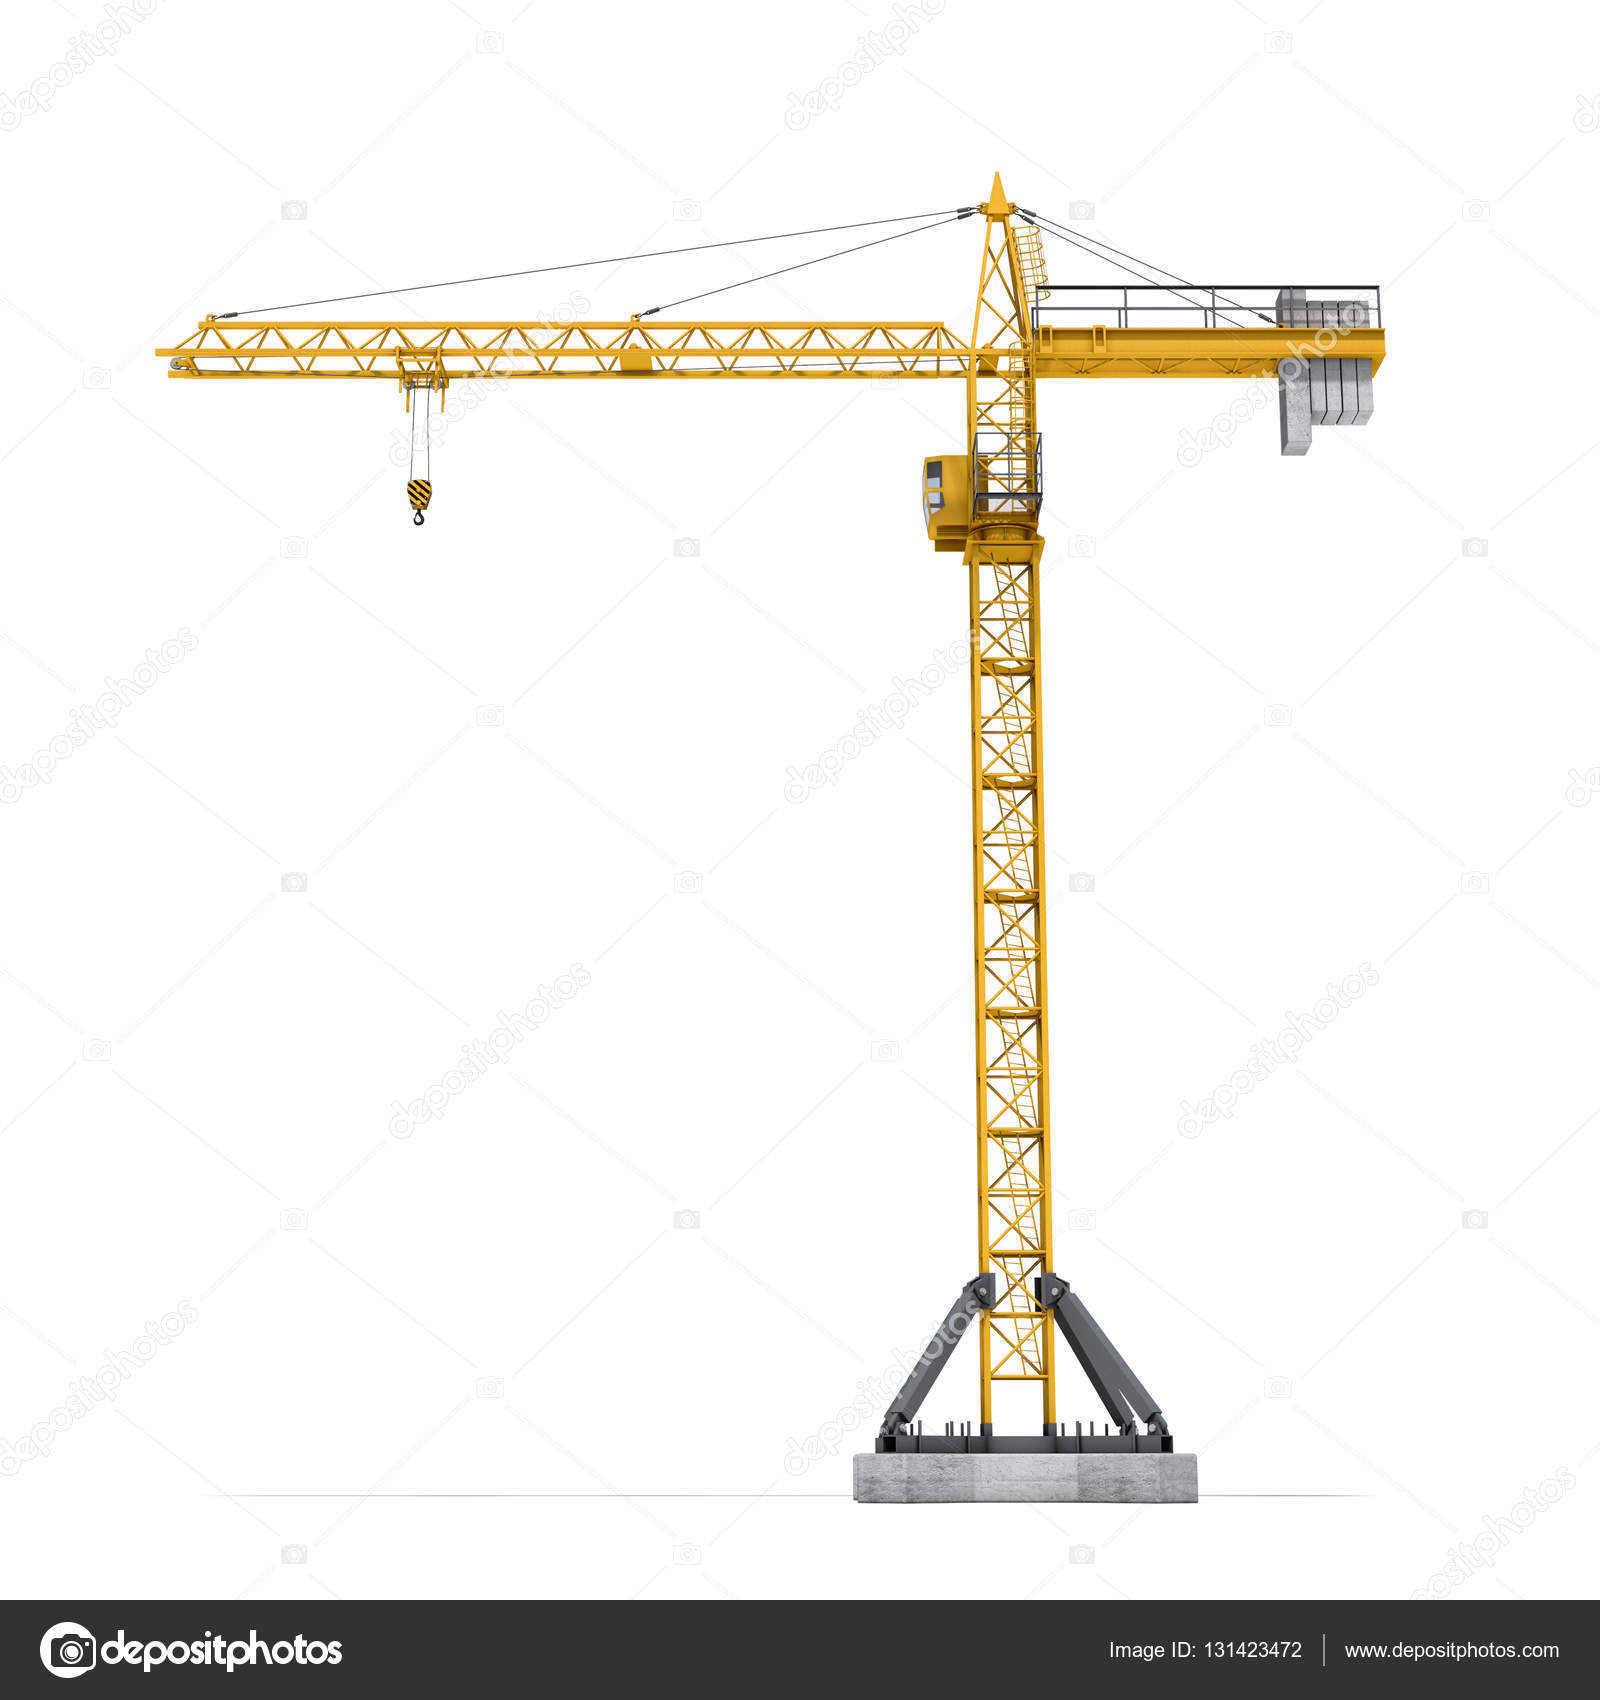 Rendering of yellow tower crane full-height isolated on the white ...